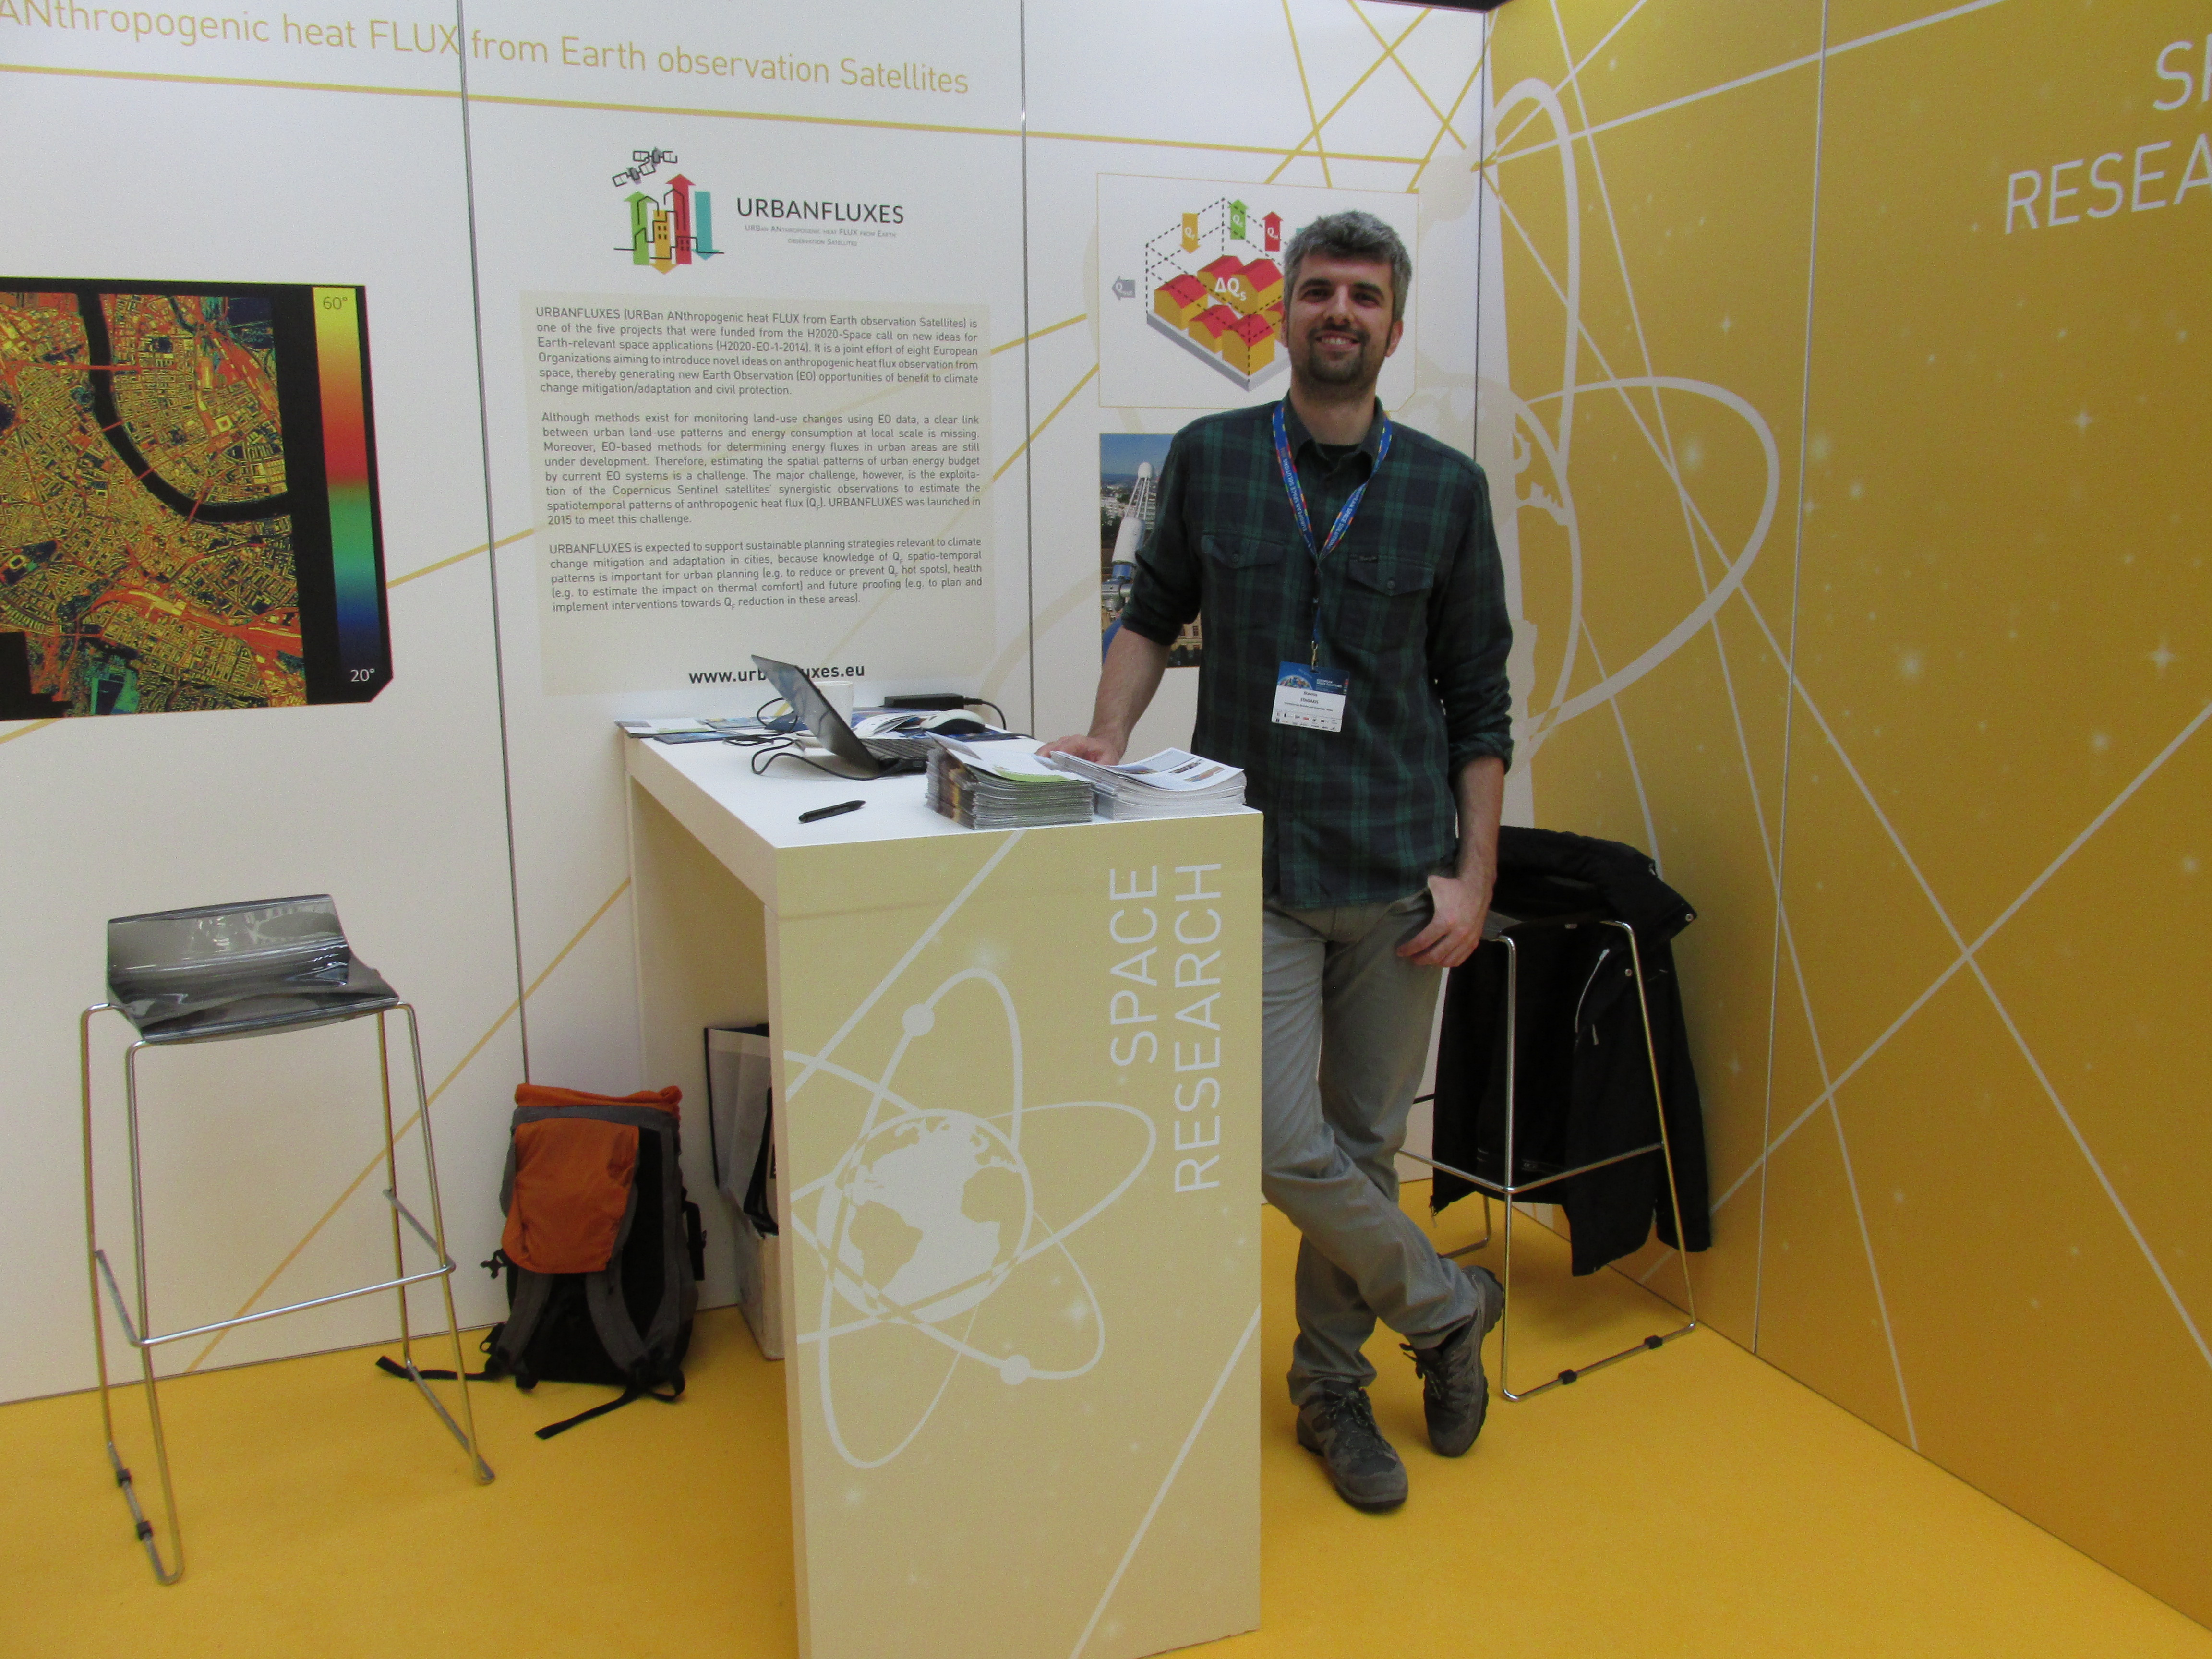 Stavros Stagakis in the URBANFLUXES stand during European Space Solutions